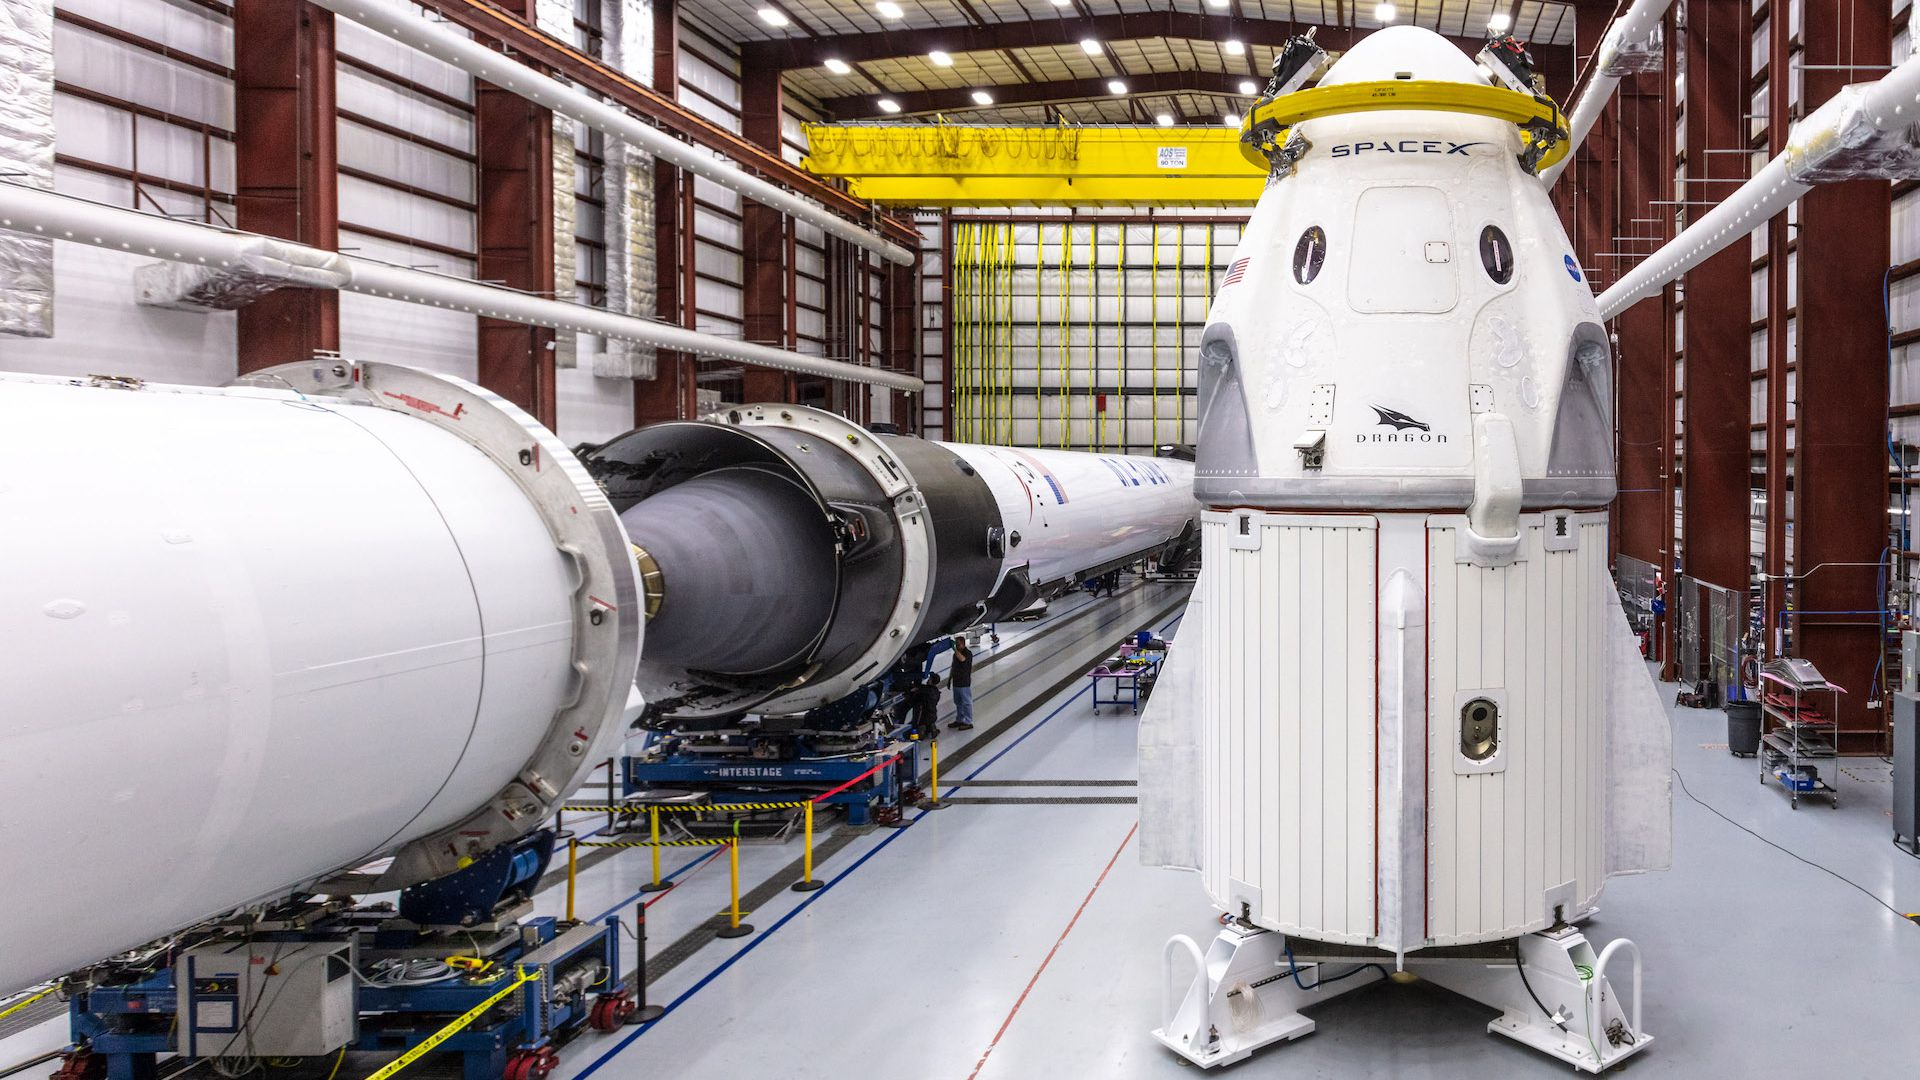 SpaceX's Crew Dragon capsule ahead of launch.